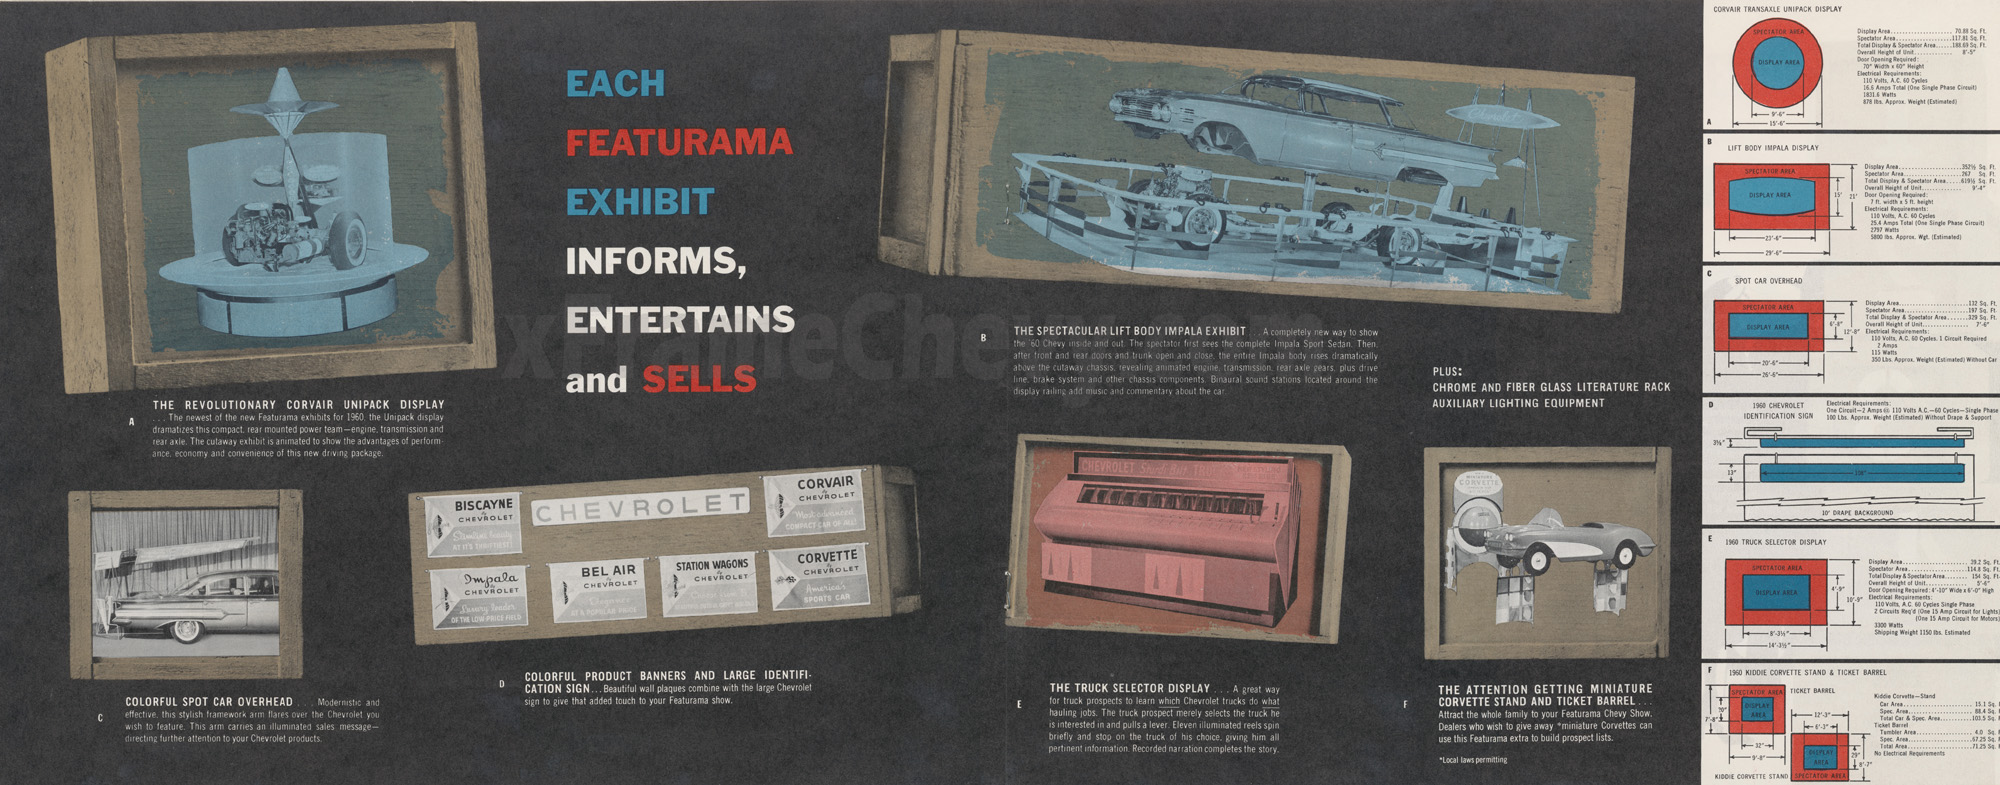 1960 Chevy Featurama brochure - pages 3 and 4